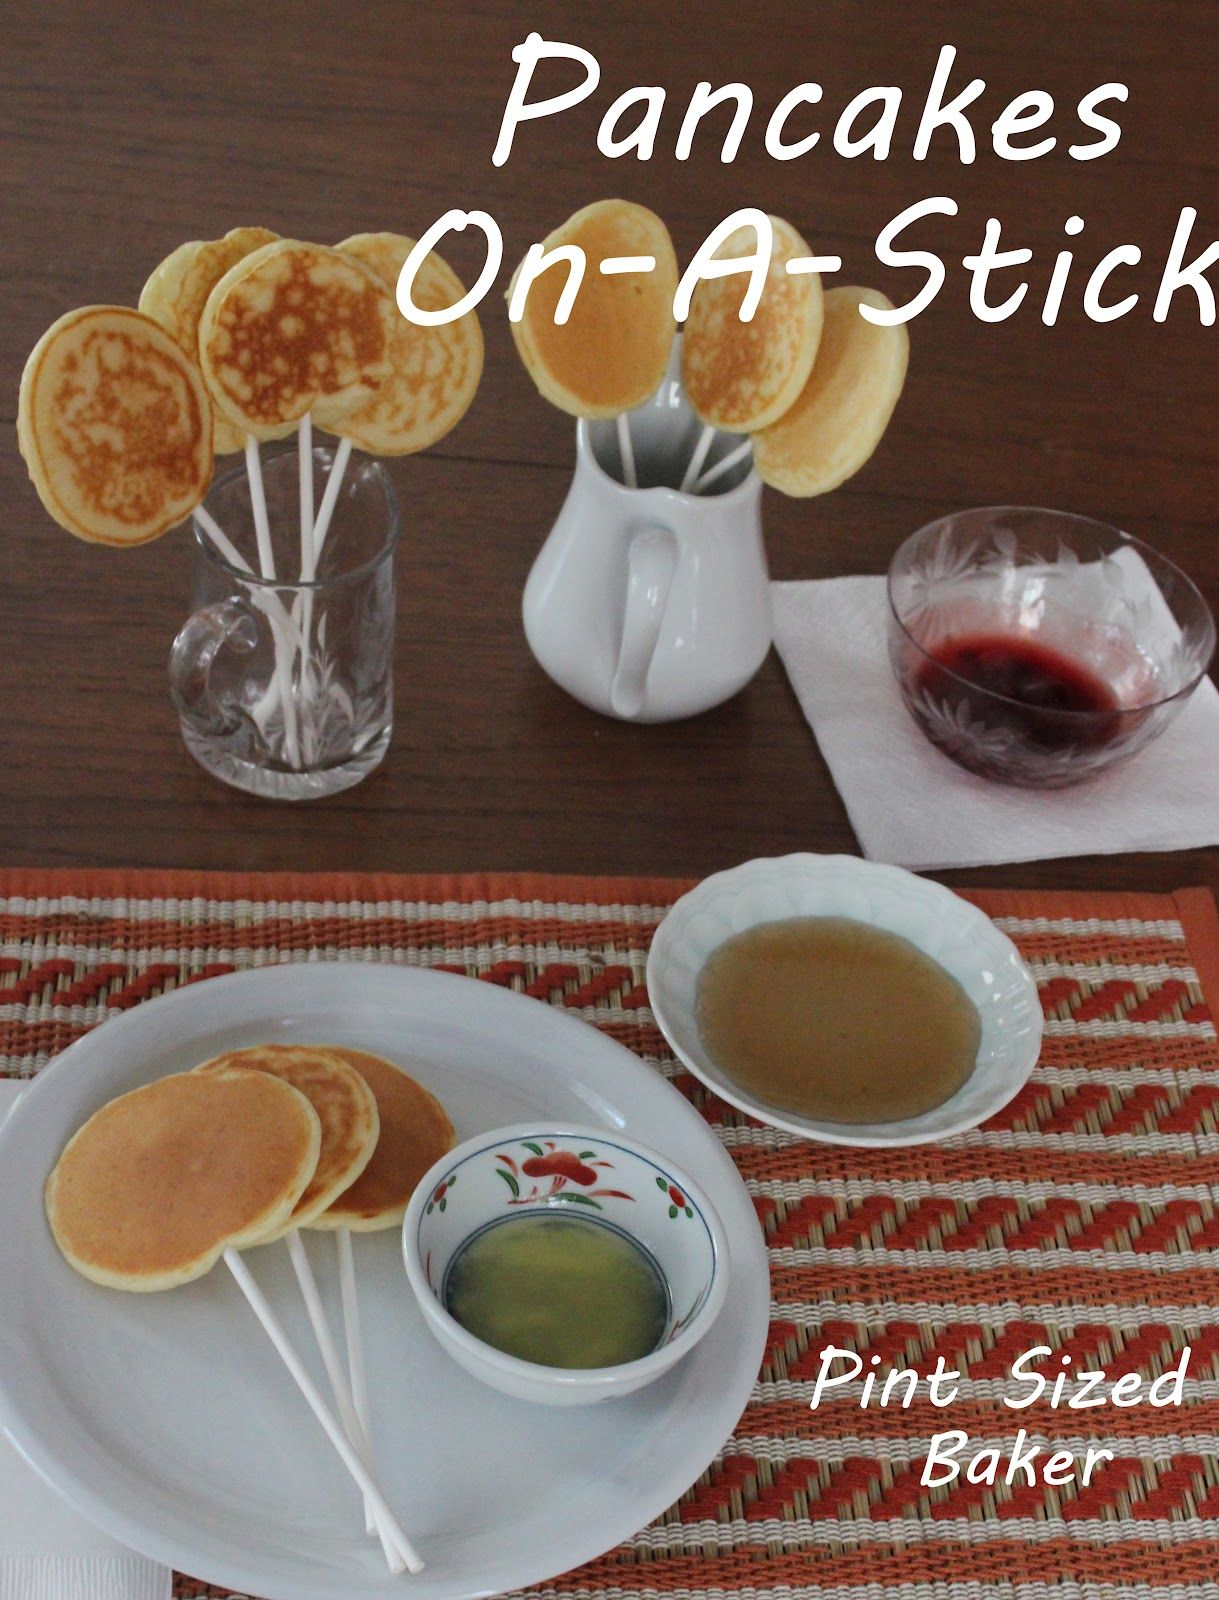 Pj and pancakesparty on a stick tasty and easy to make and best of pj and pancakesparty on a stick tasty and easy to make and best of all kids love them ccuart Choice Image